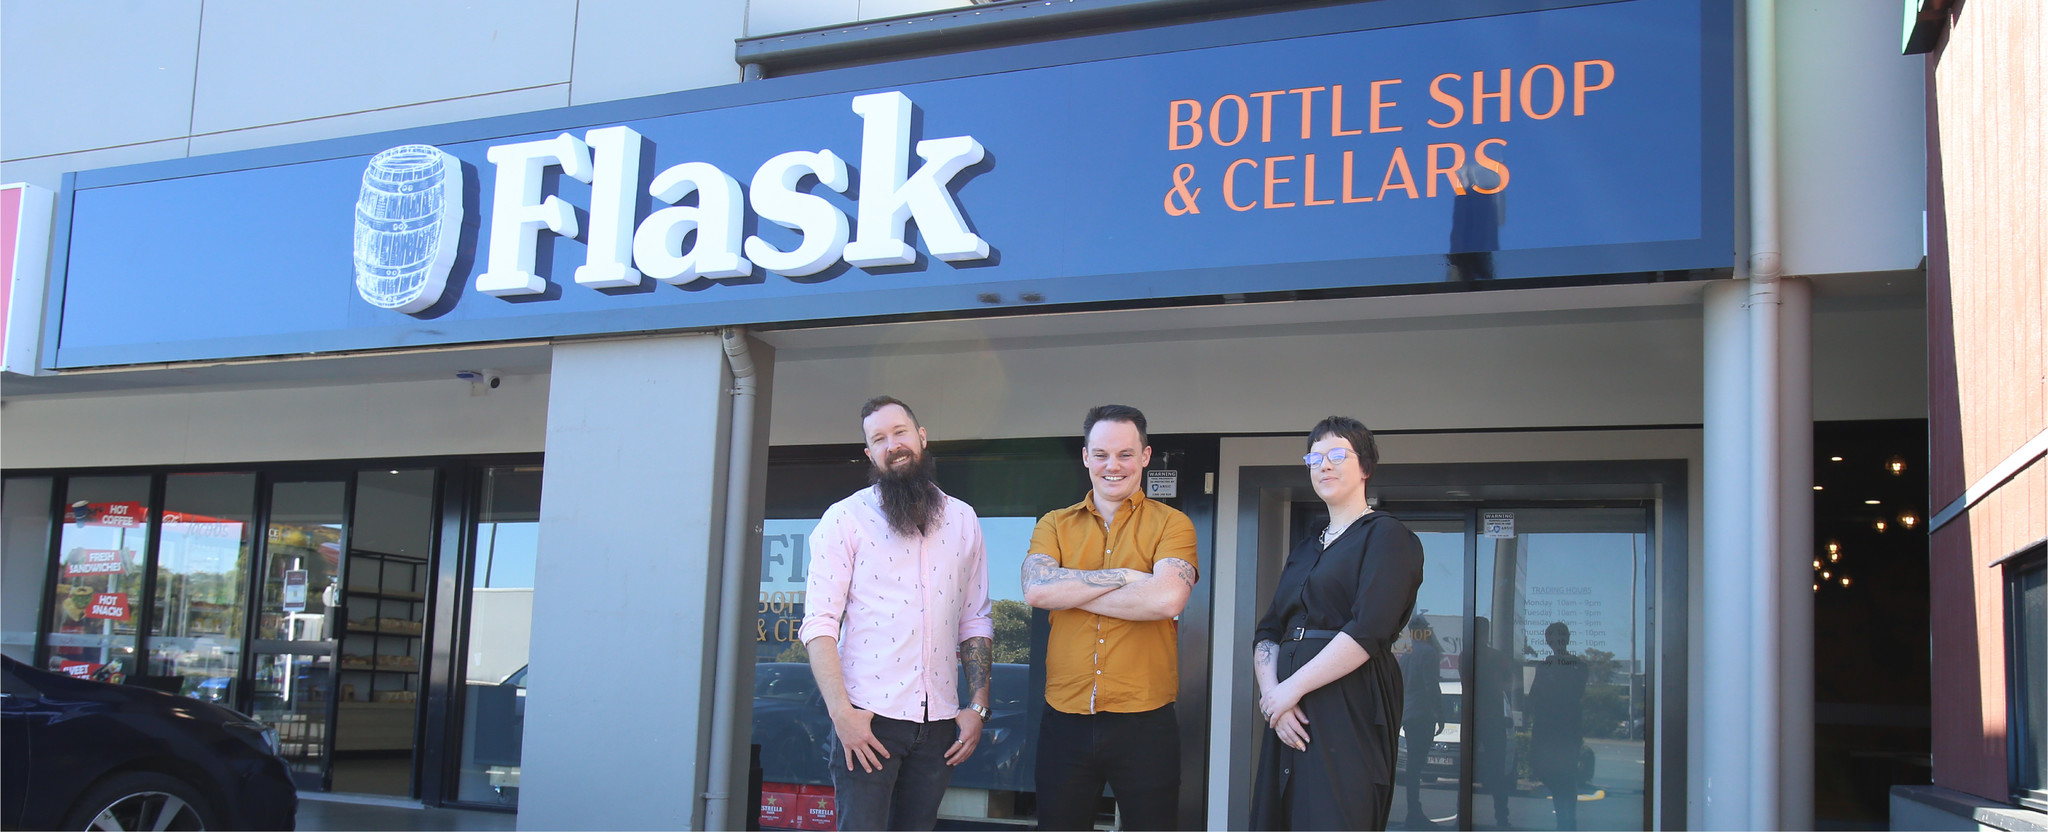 Owners of Heritage Listed Sandgate Post Office Hotel Launch New Bottle Shop Group to Support Australian Industry - Flask